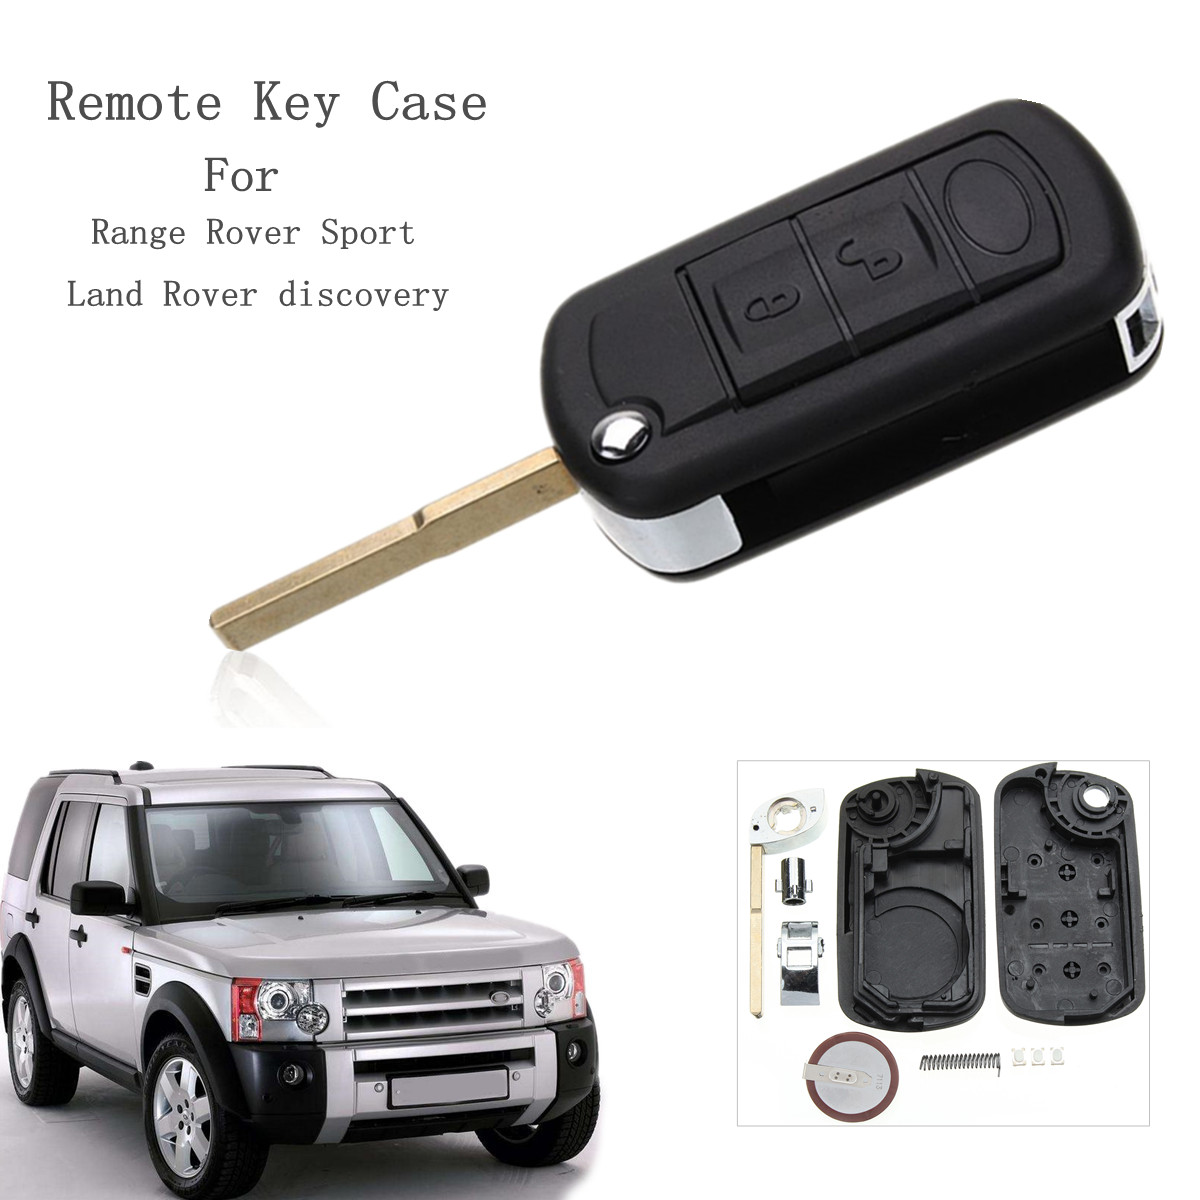 3 Buttons Car Remote Key Fob Case Shell With VL2330 Battery For Land Rover Discovery Range Rover Sport